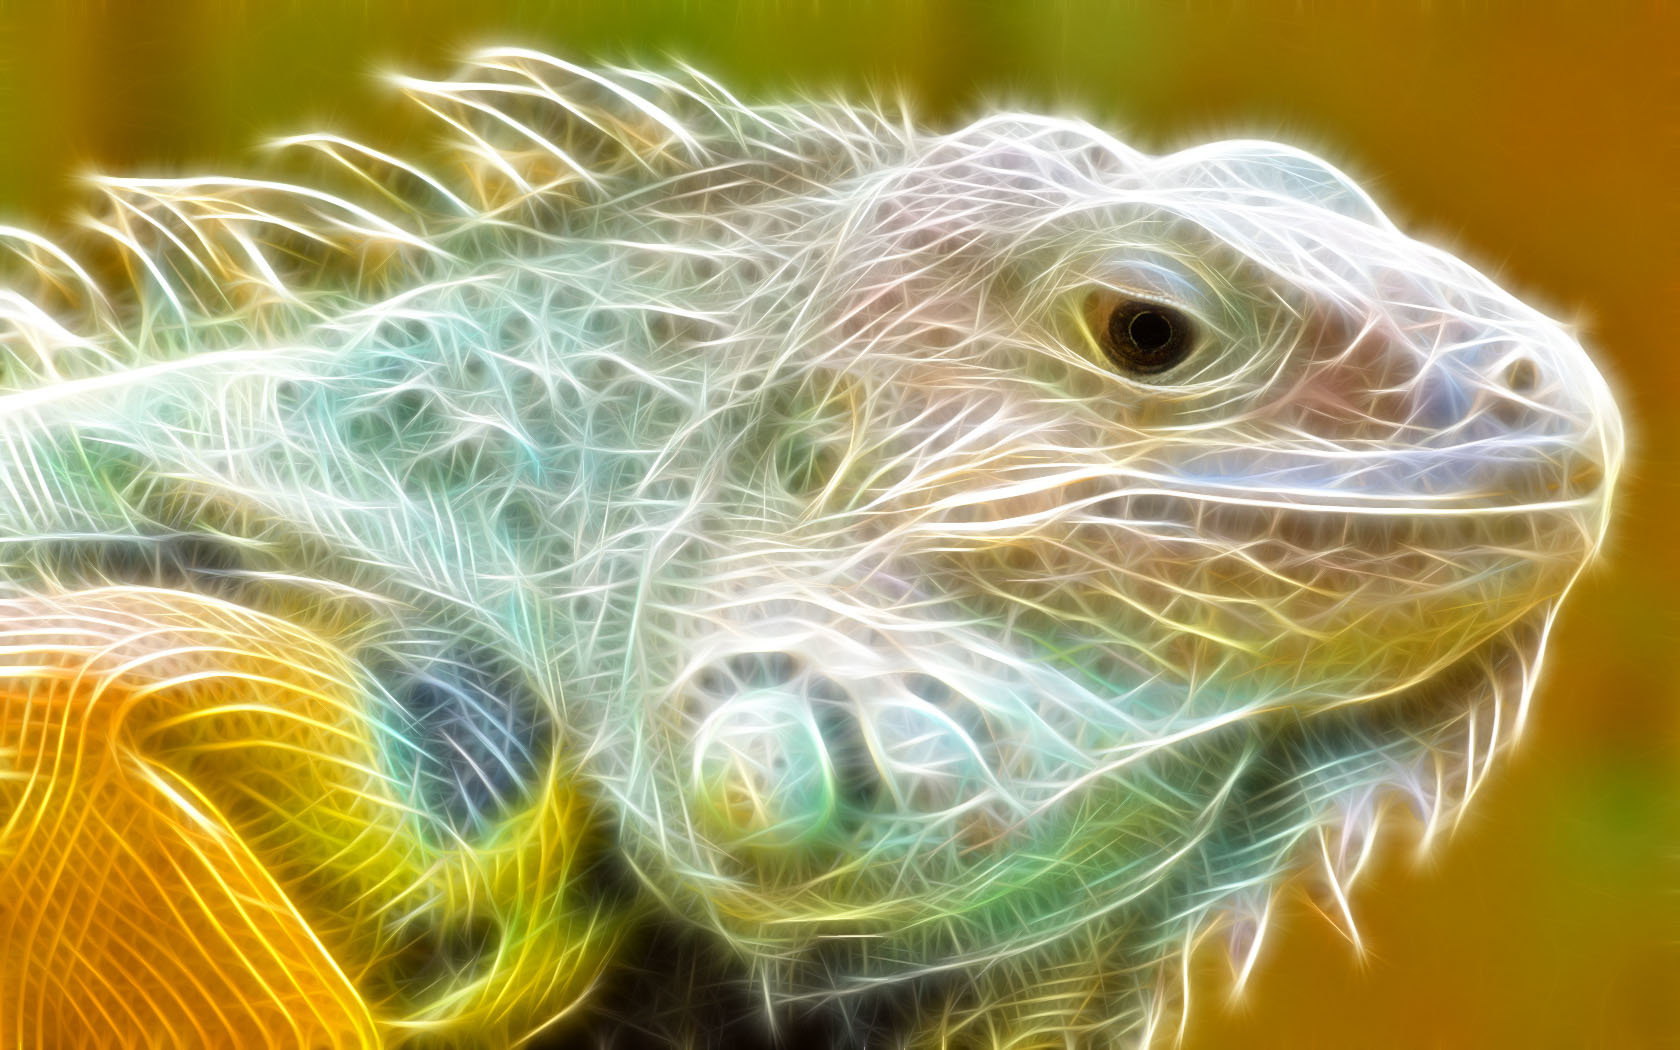 Free Iguana high quality wallpaper ID:380902 for hd 1680x1050 computer